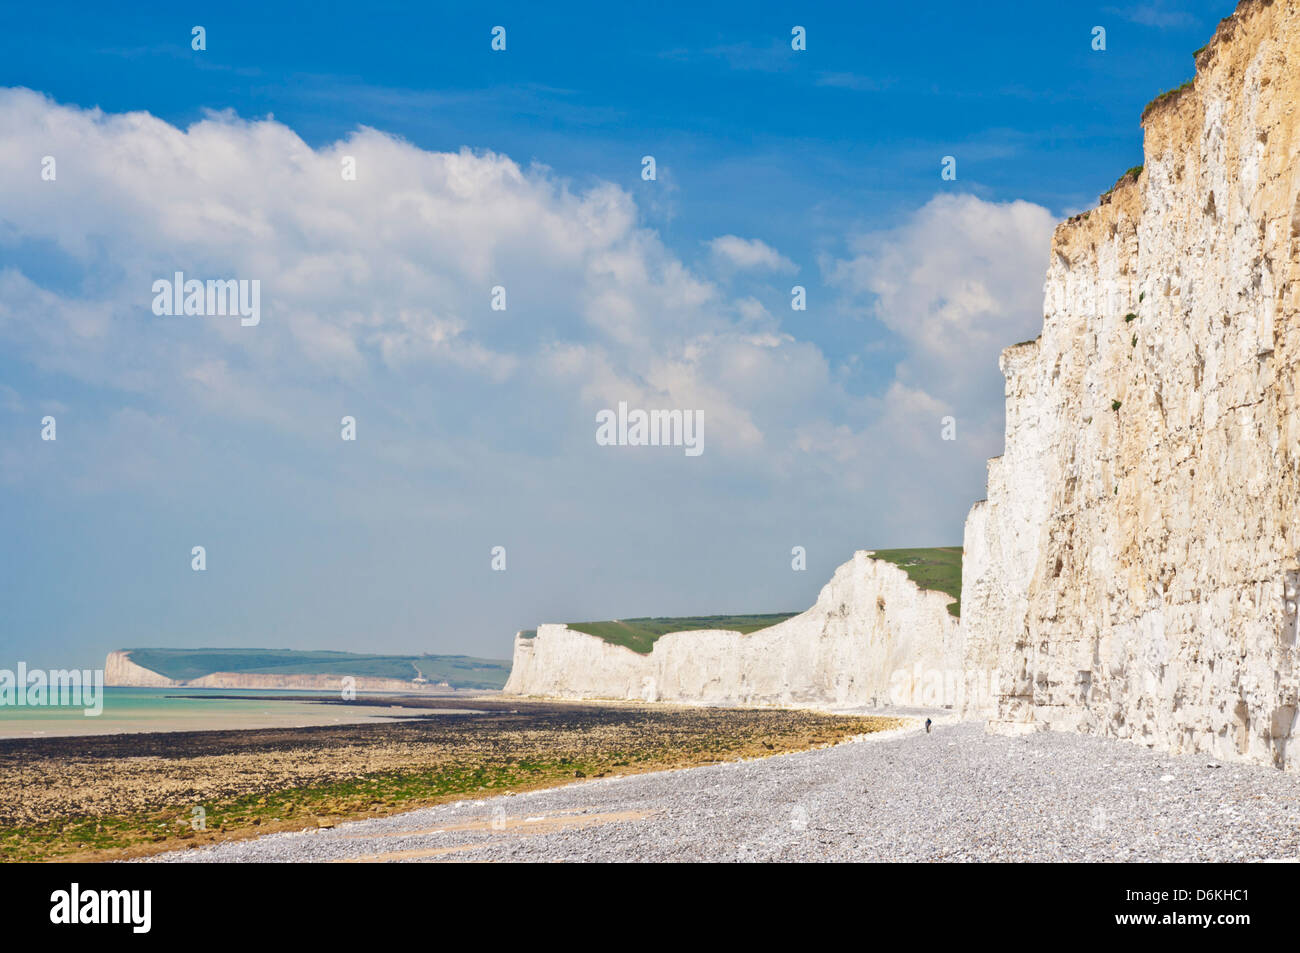 Seven Sisters cliffs, Birling Gap beach, South Downs Way, South Downs National Park, East Sussex, England, UK GB - Stock Image